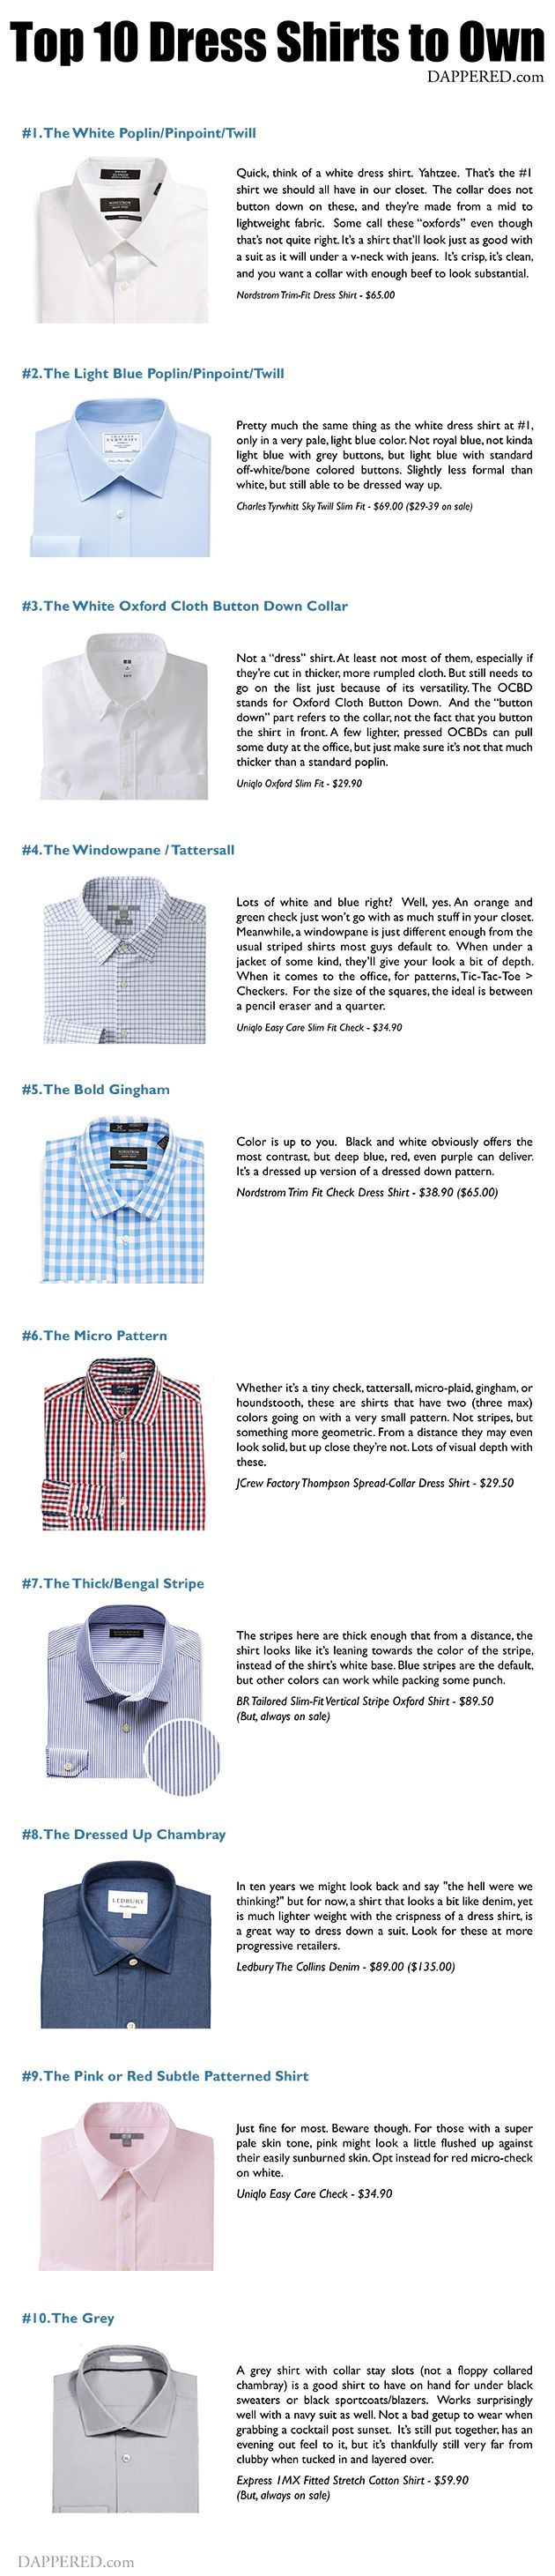 The Top 10 Types of Dress Shirts to Own (via @Dappered)